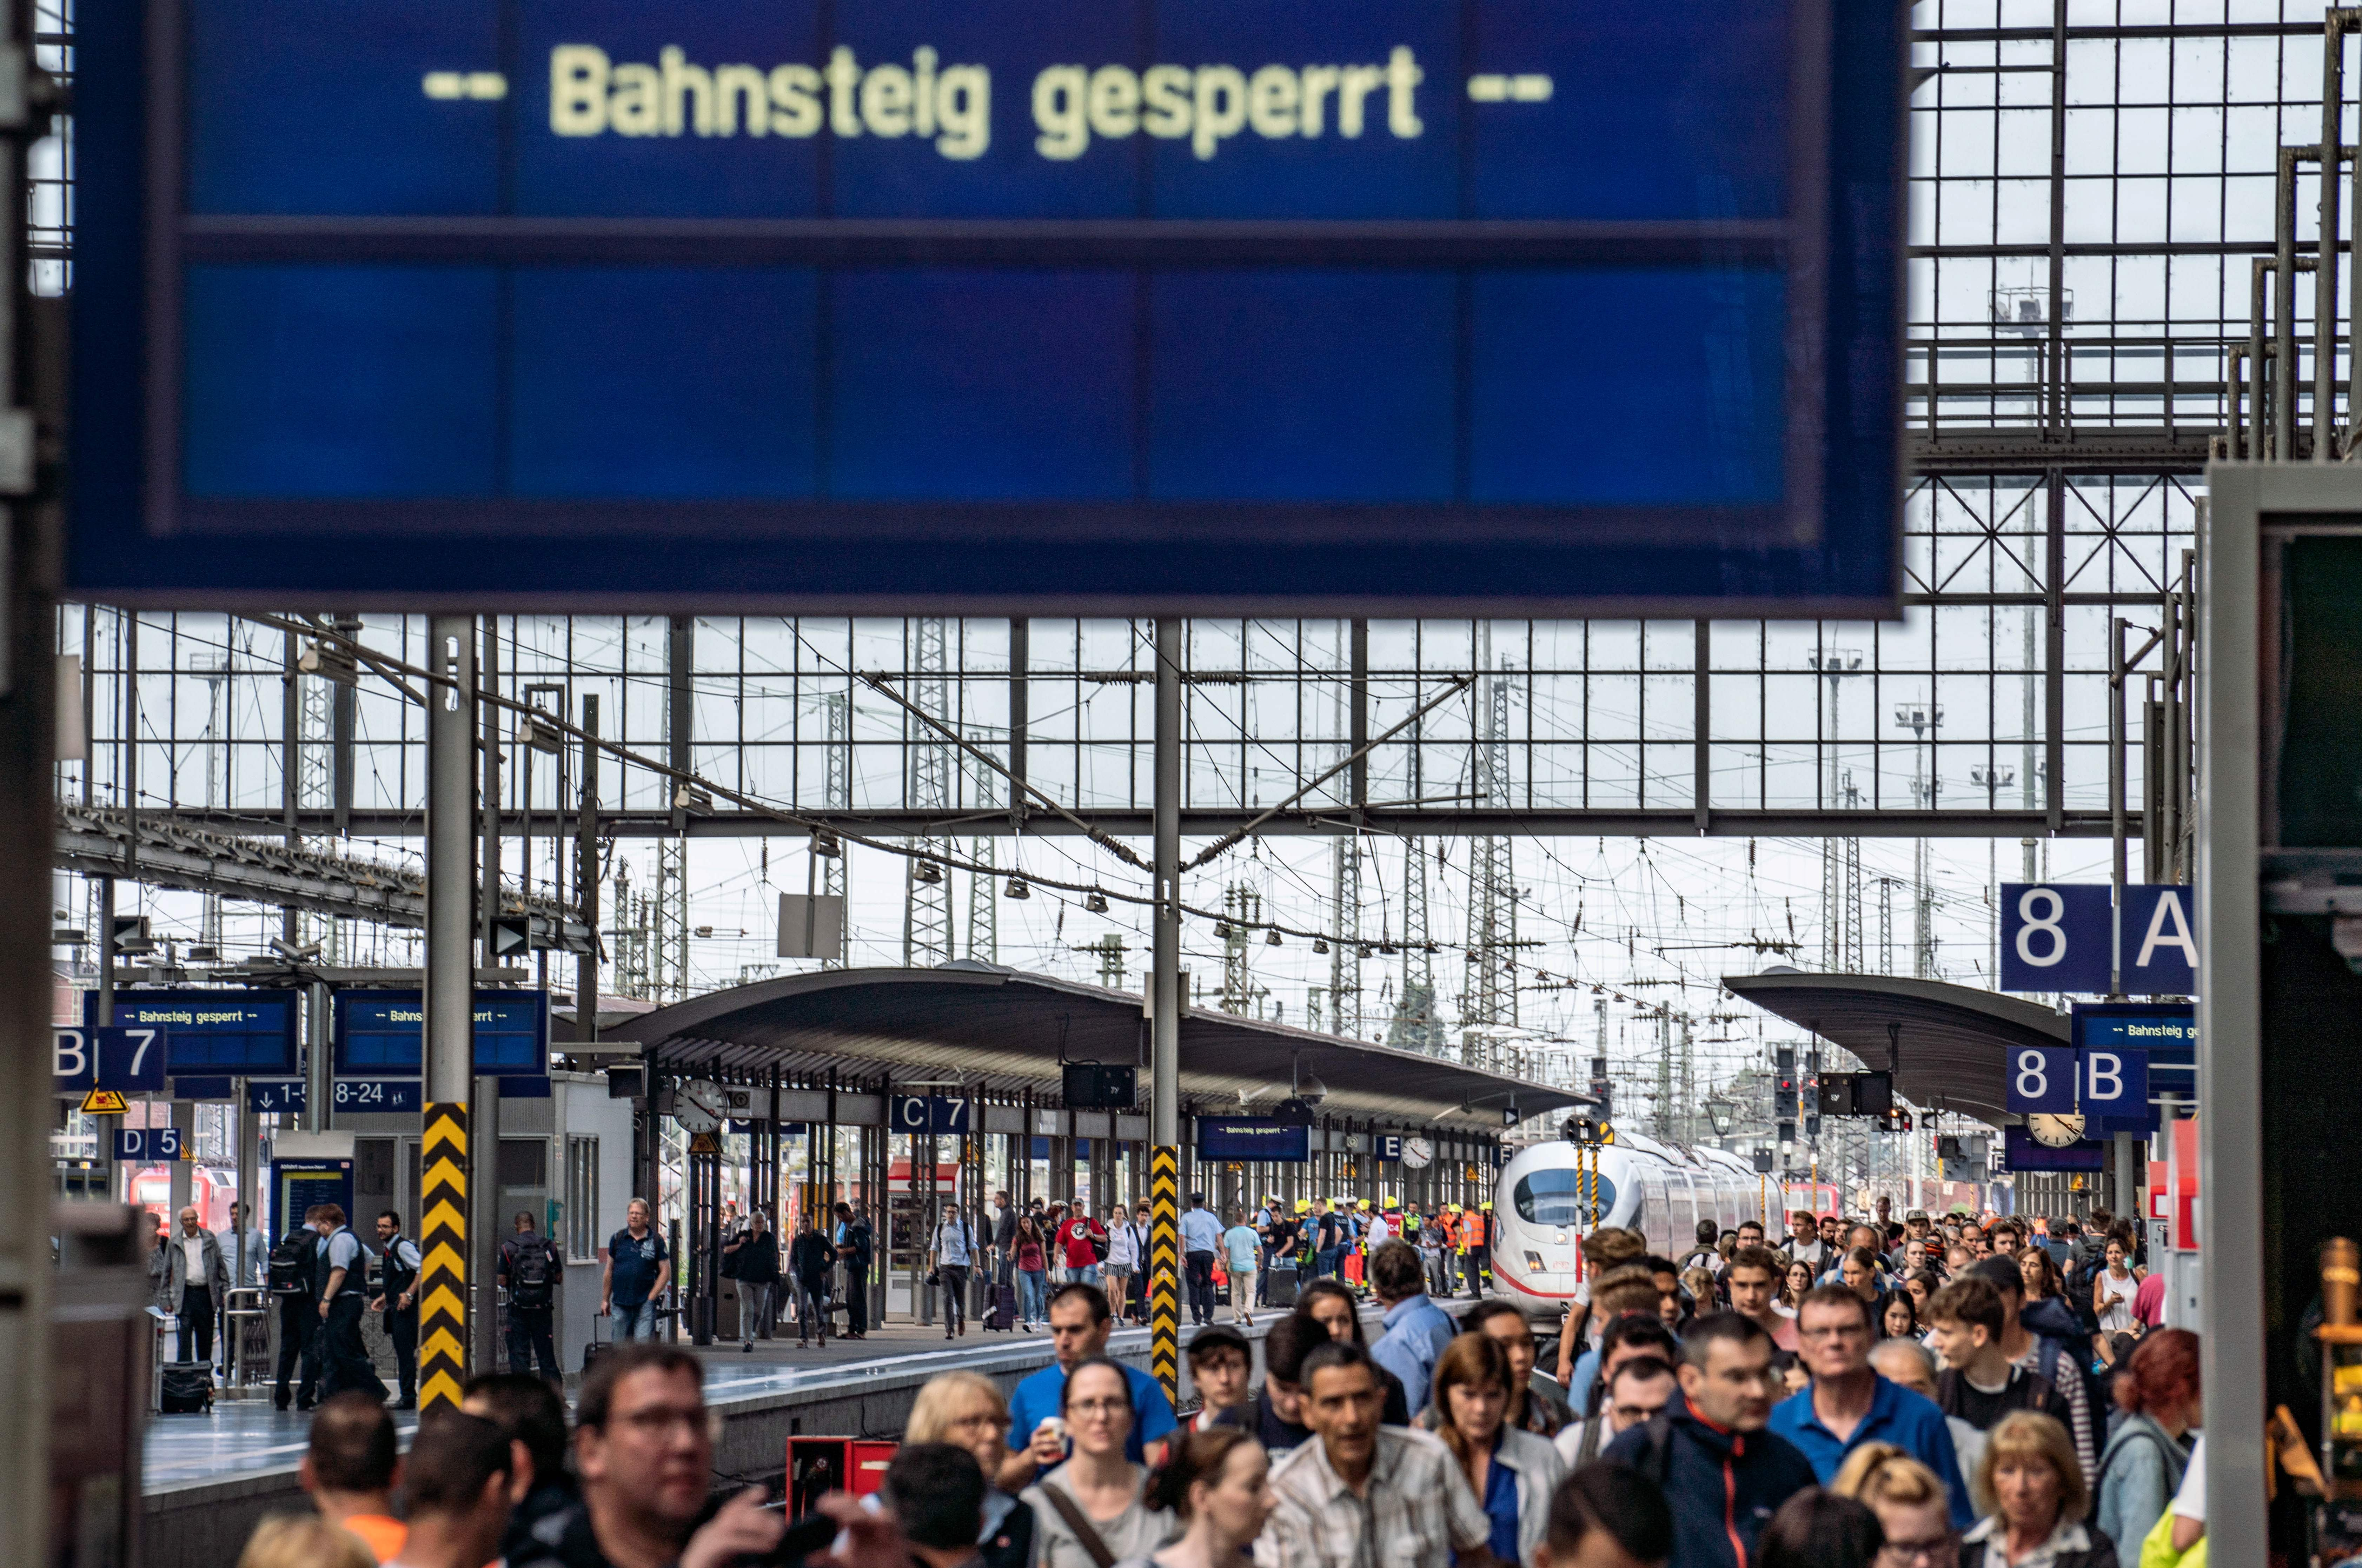 Frankfurt's main station is crowded with passengers as police and medical helpers stand next to an ICE speed train (background) on July 29, 2019. (FRANK RUMPENHORST/AFP/Getty Images)